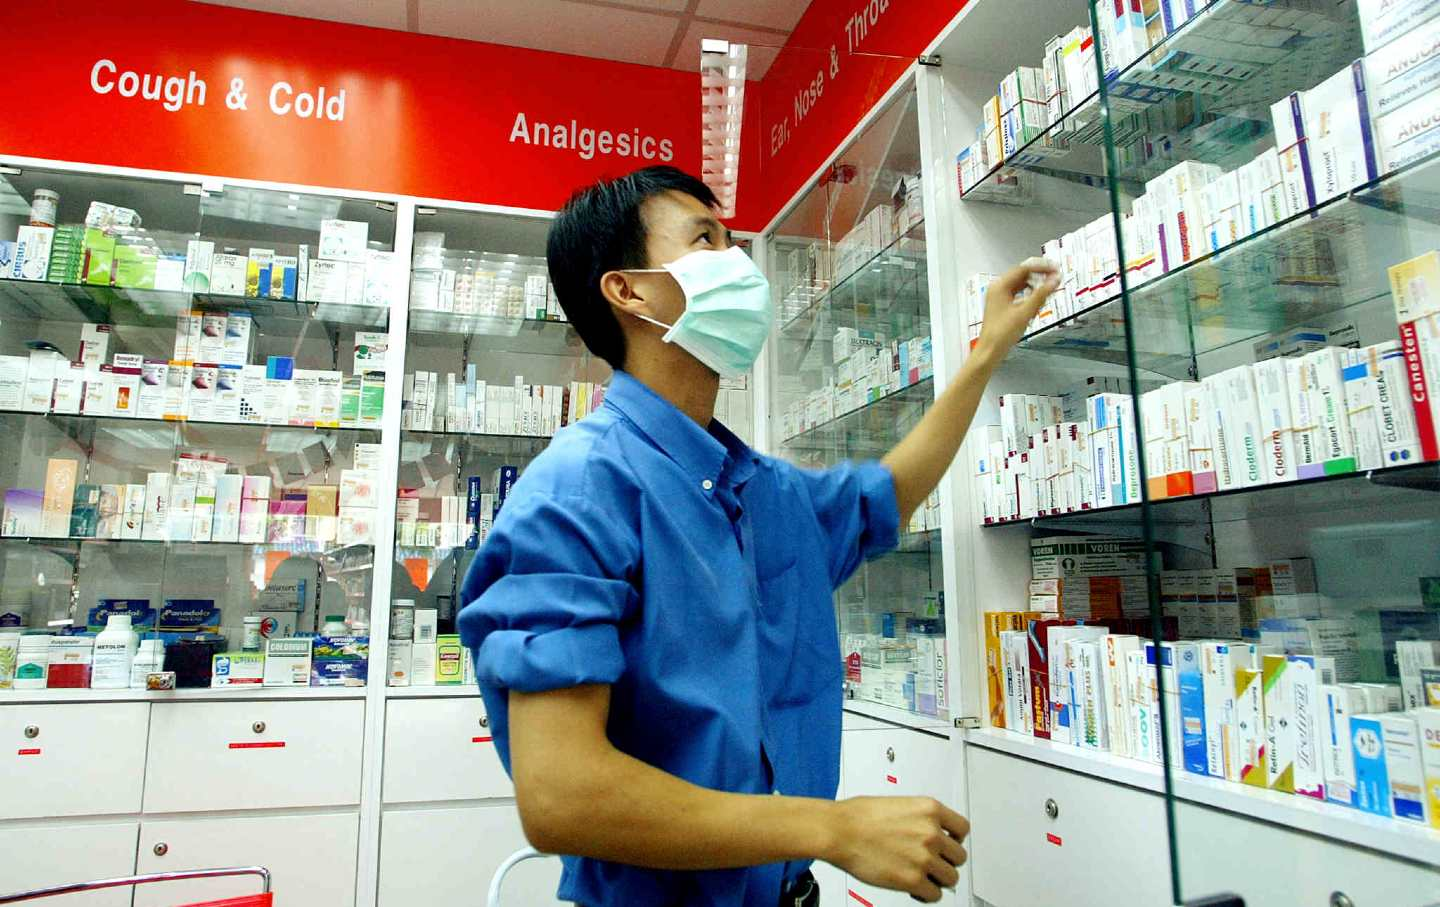 A pharmacist checks his stock while wearing a surgical mask.